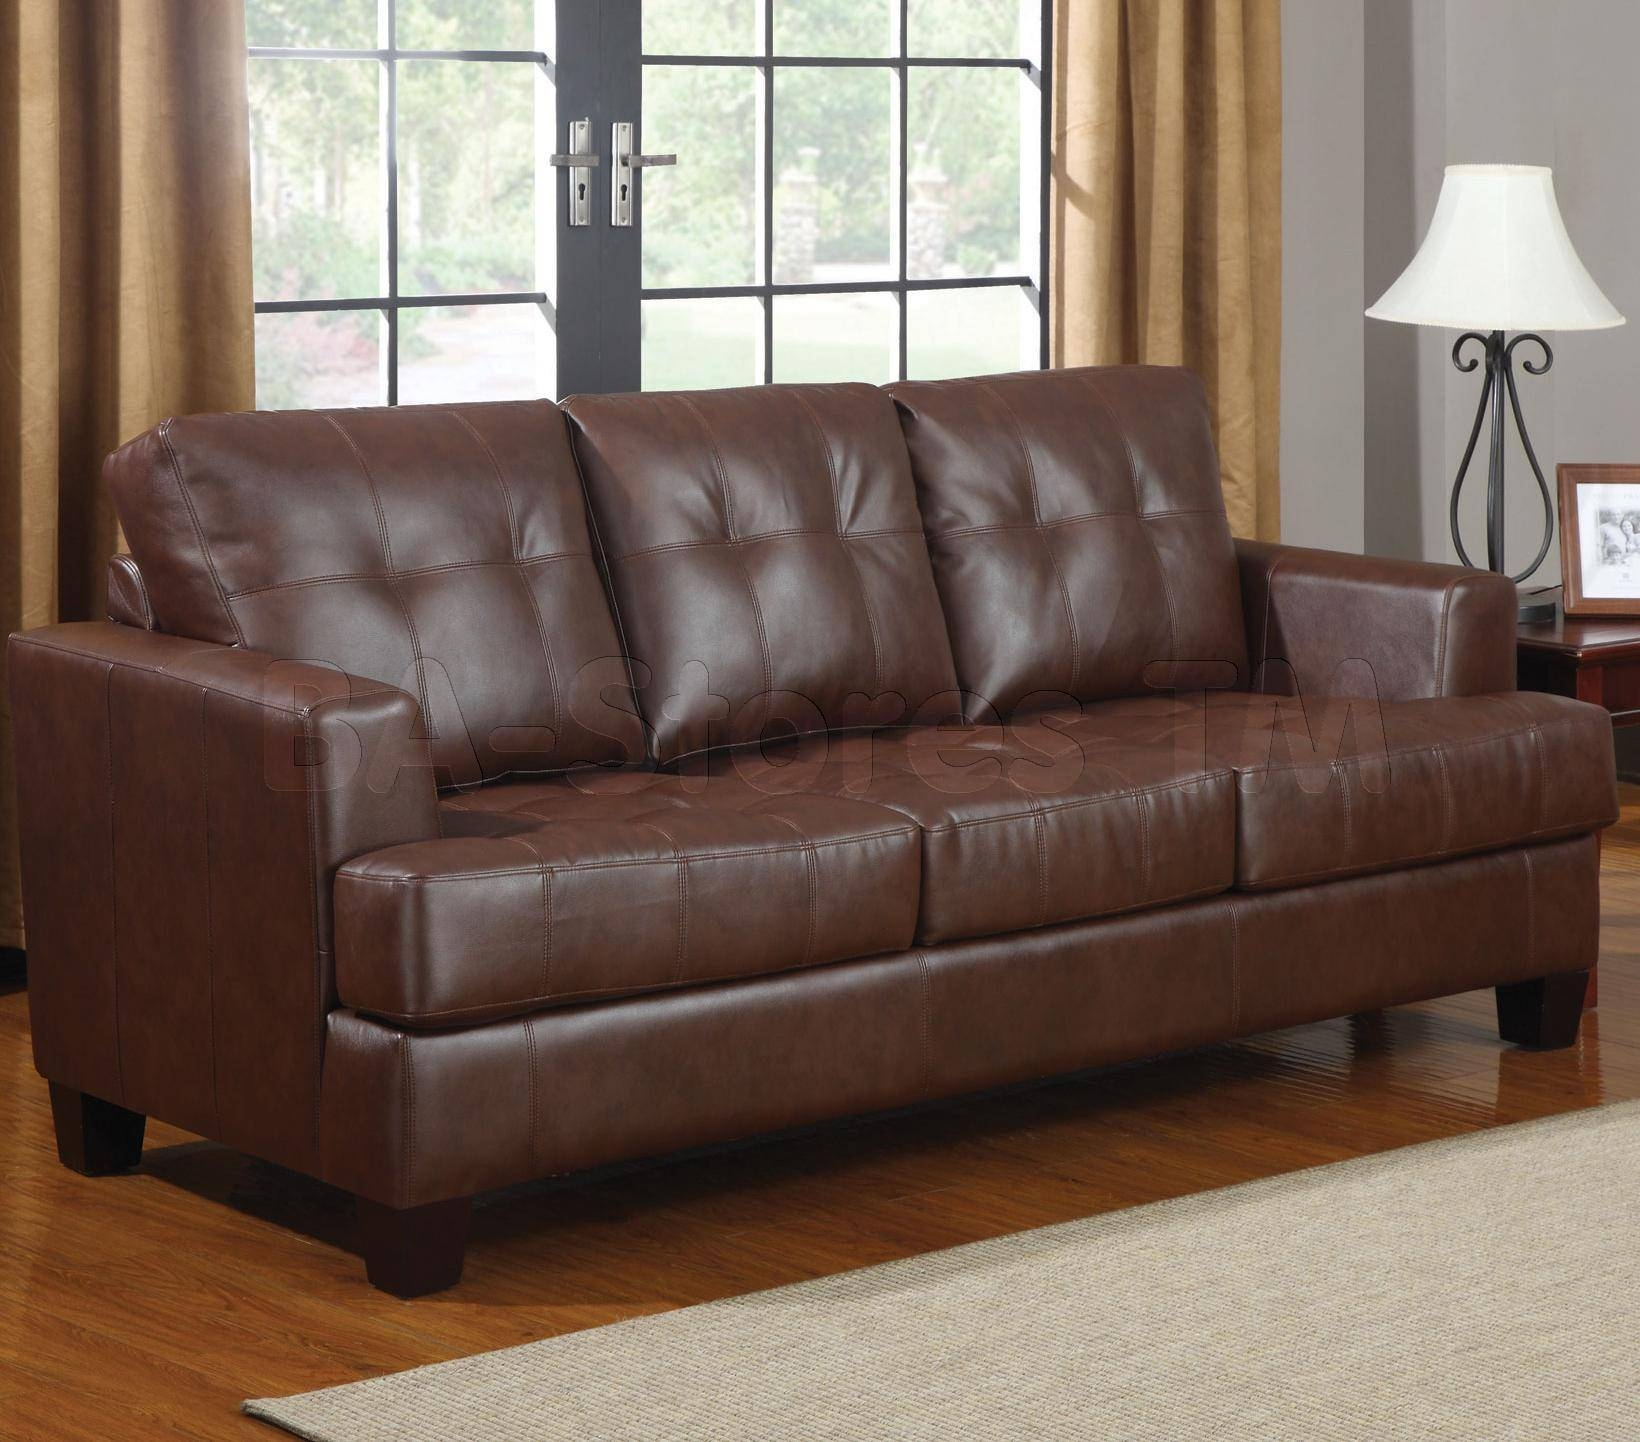 Living Room : Living Room Interior Ideas Furniture Leather Sofa For Contemporary Brown Leather Sofas (View 12 of 15)